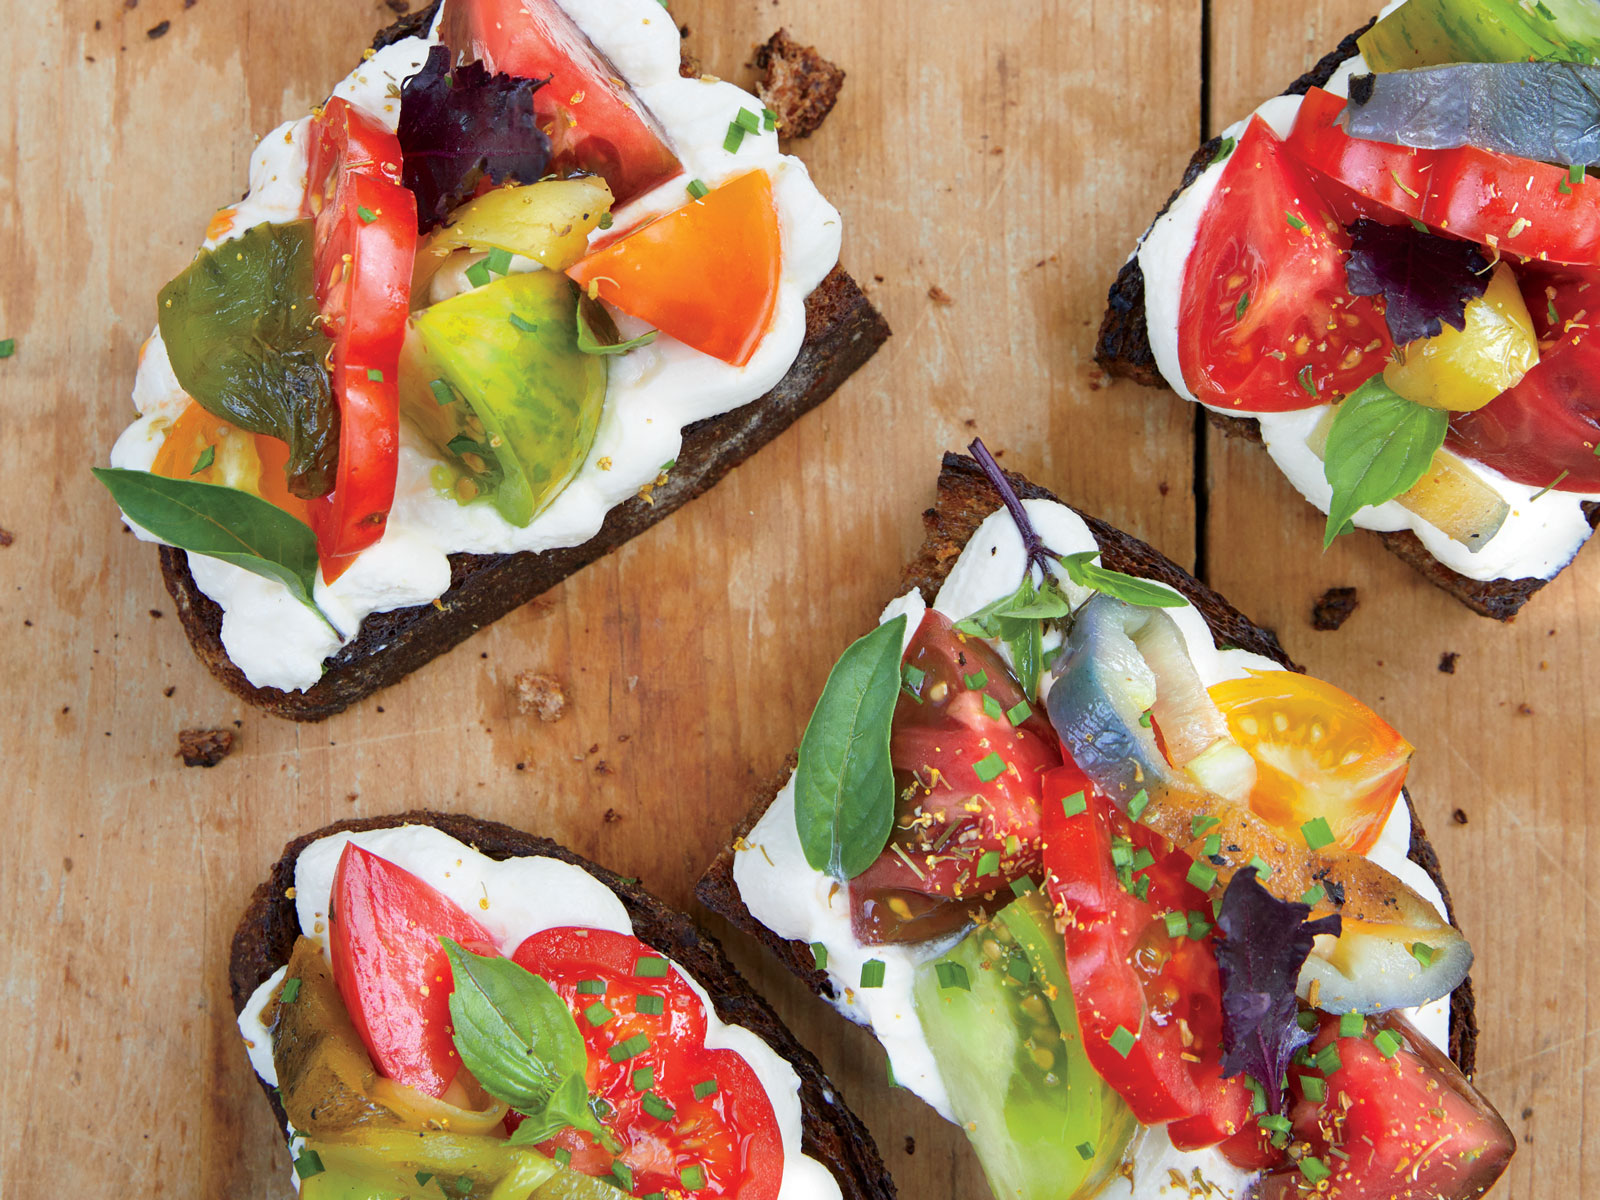 Heirloom Tomato and Pepper Toasts with Whipped Ricotta